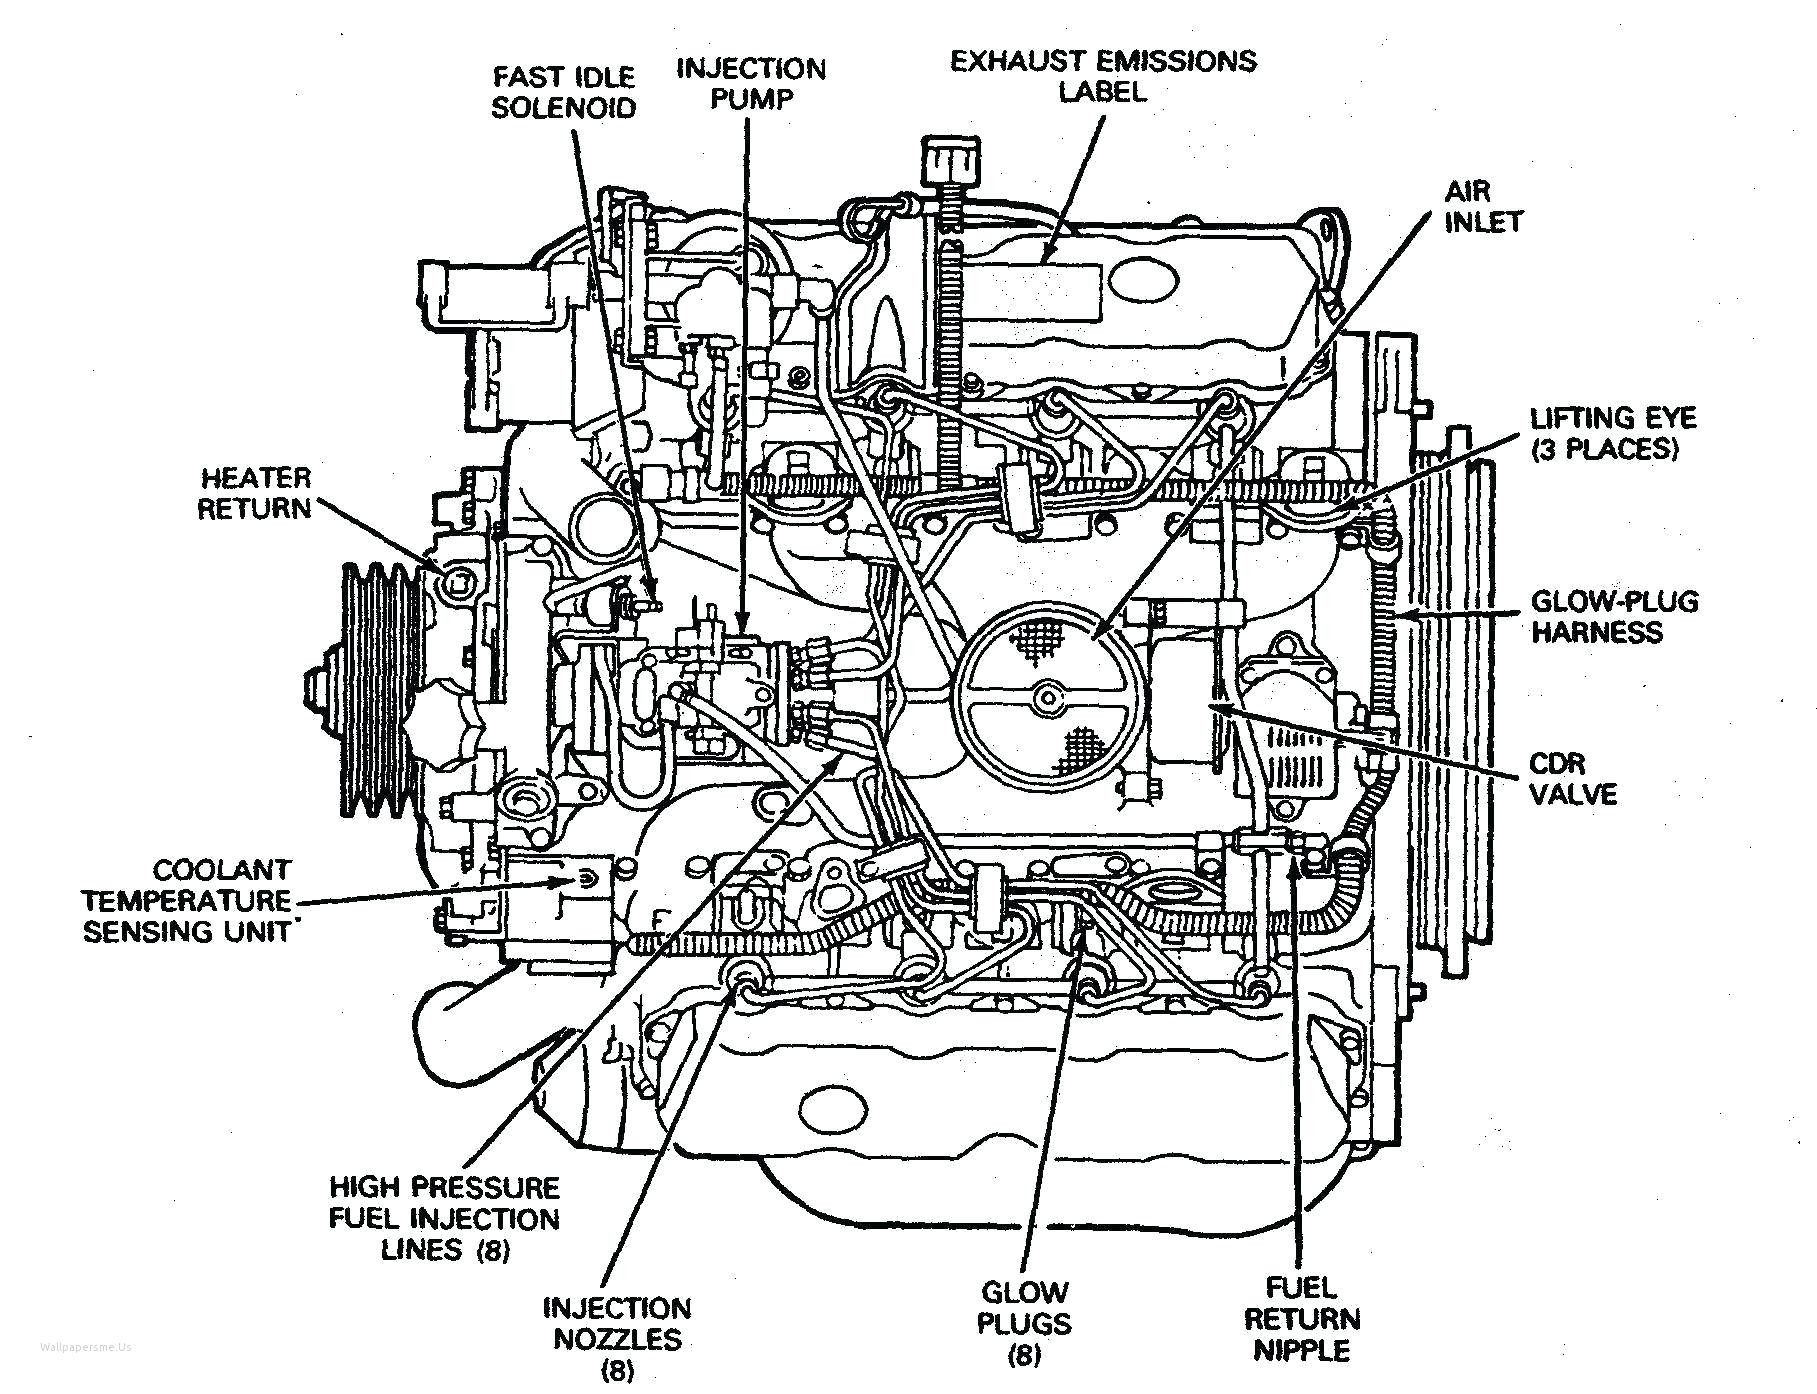 Basic Car Engine Diagram Awesome Engine Diagrams Line Contemporary Everything You Need to Of Basic Car Engine Diagram